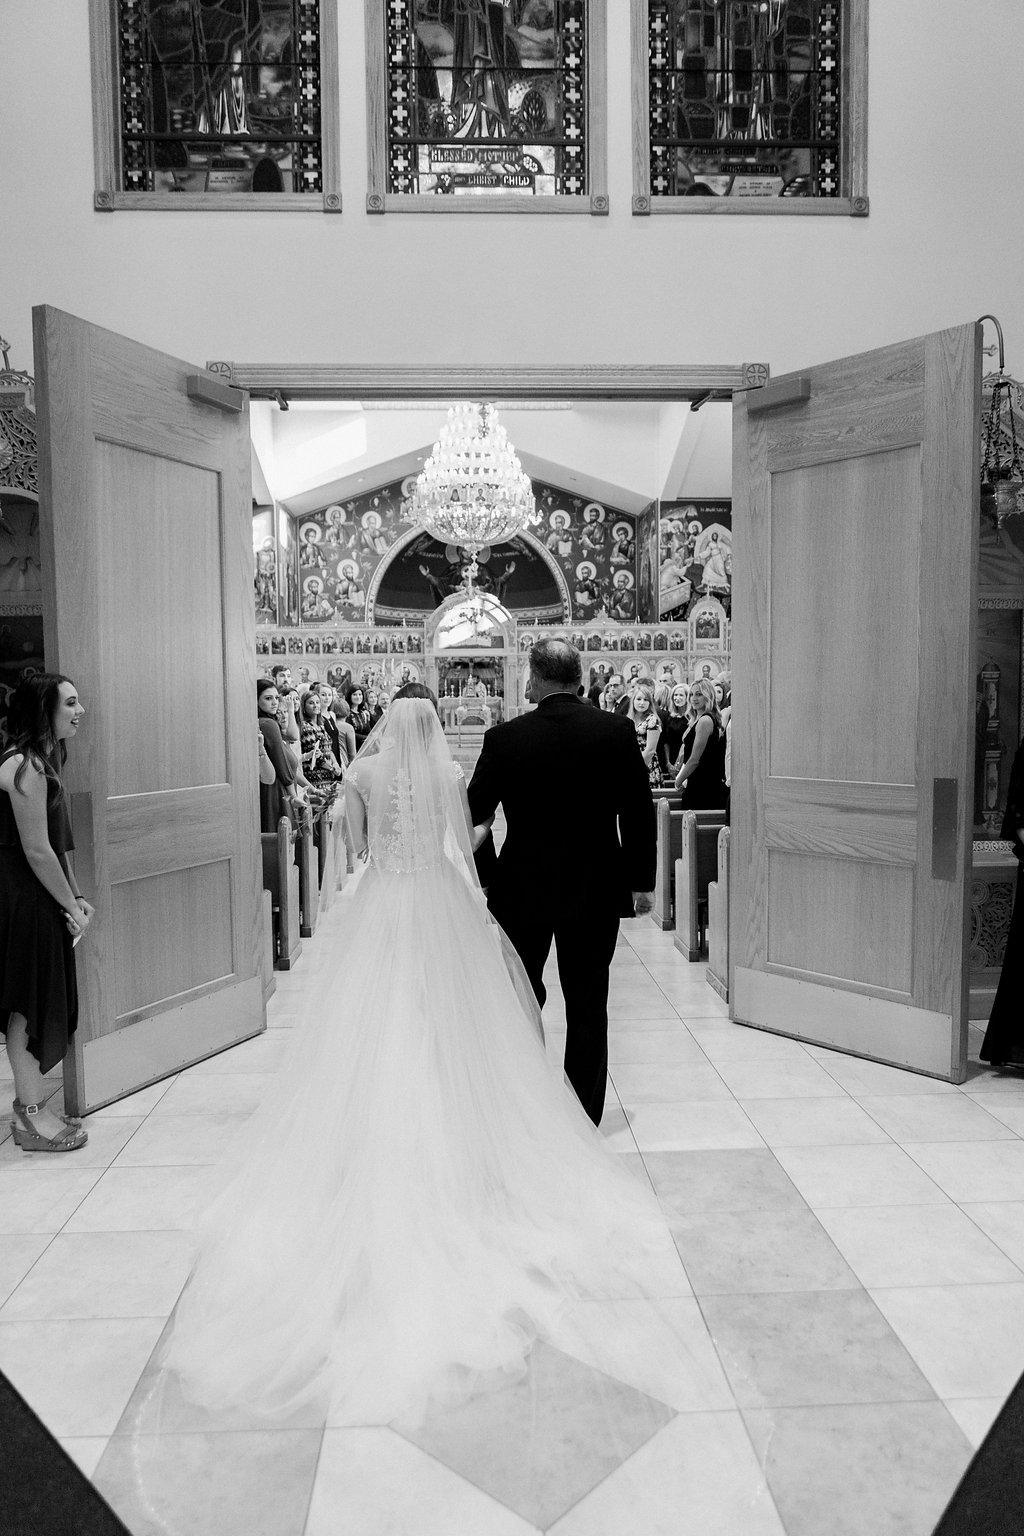 The back of the bride entering into the church with her father black and white photograph